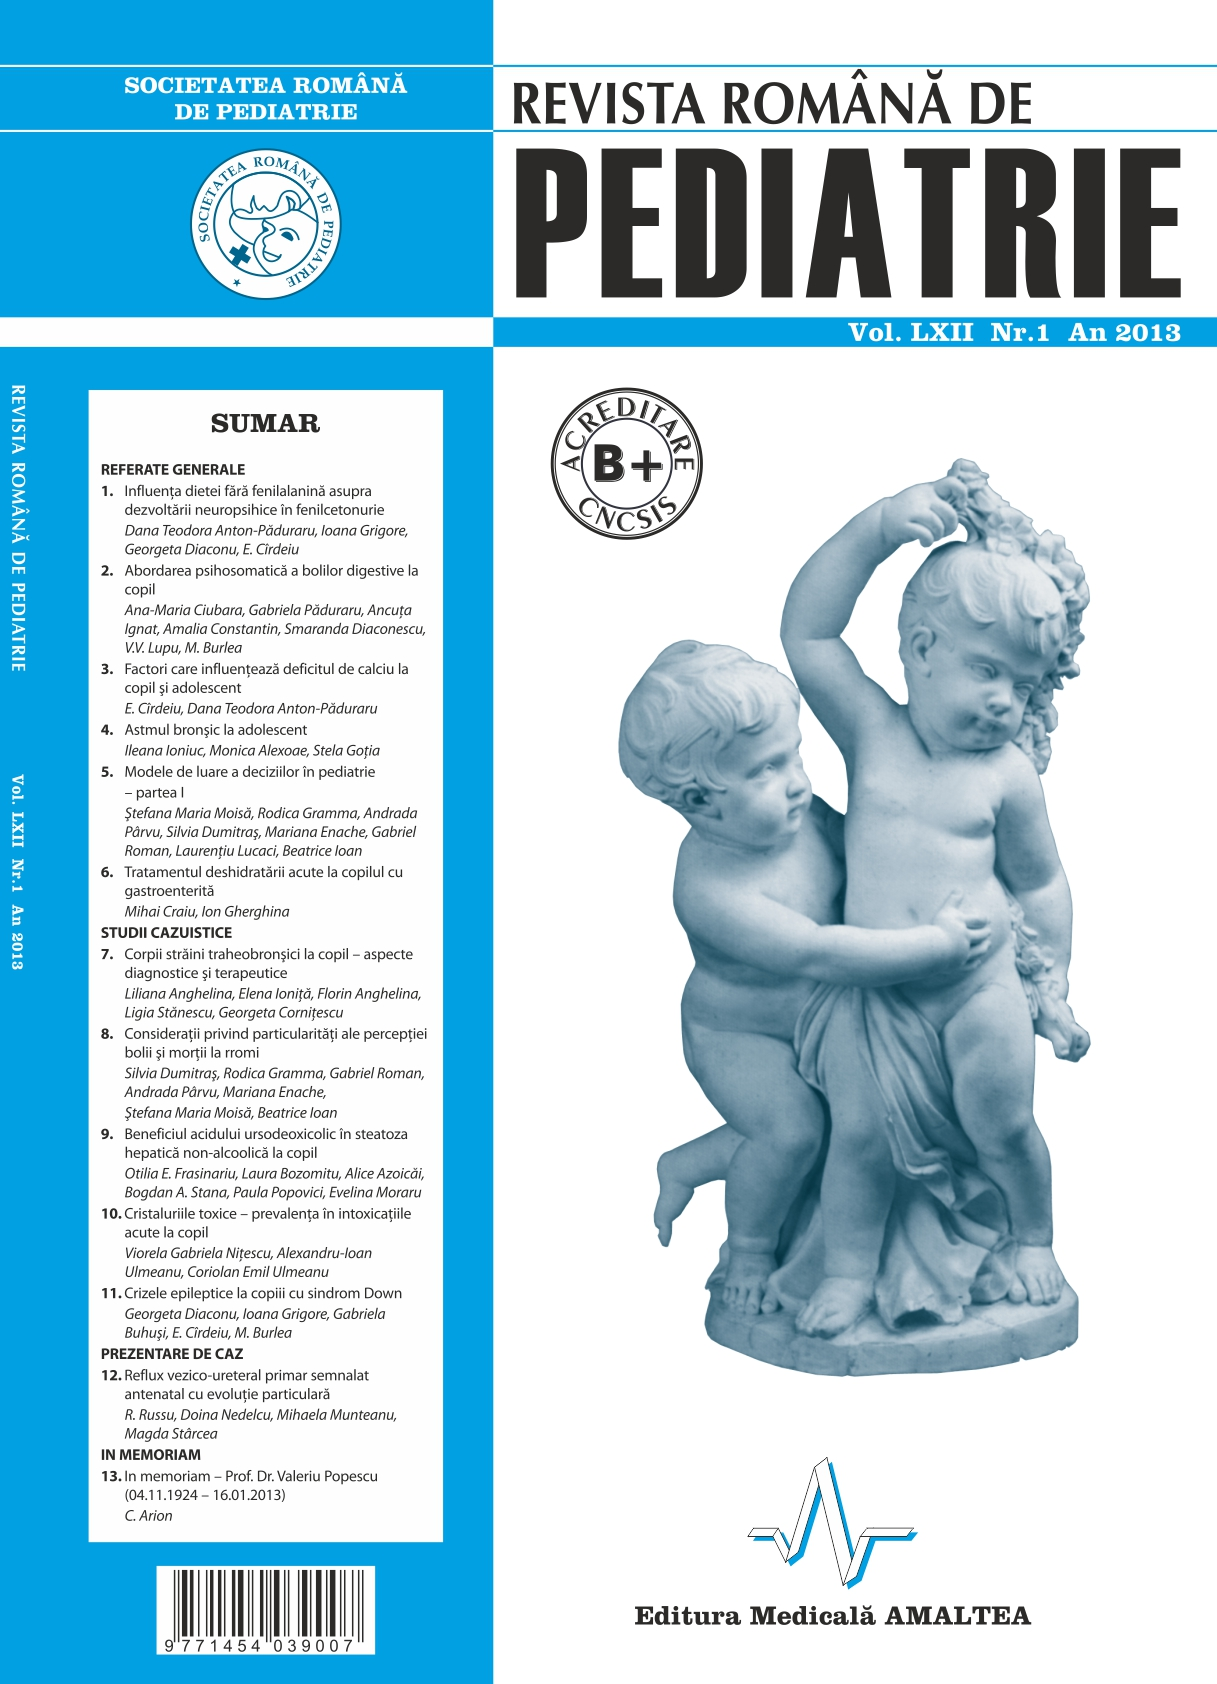 Revista Romana de PEDIATRIE | Volumul LXII, Nr. 1, An 2013